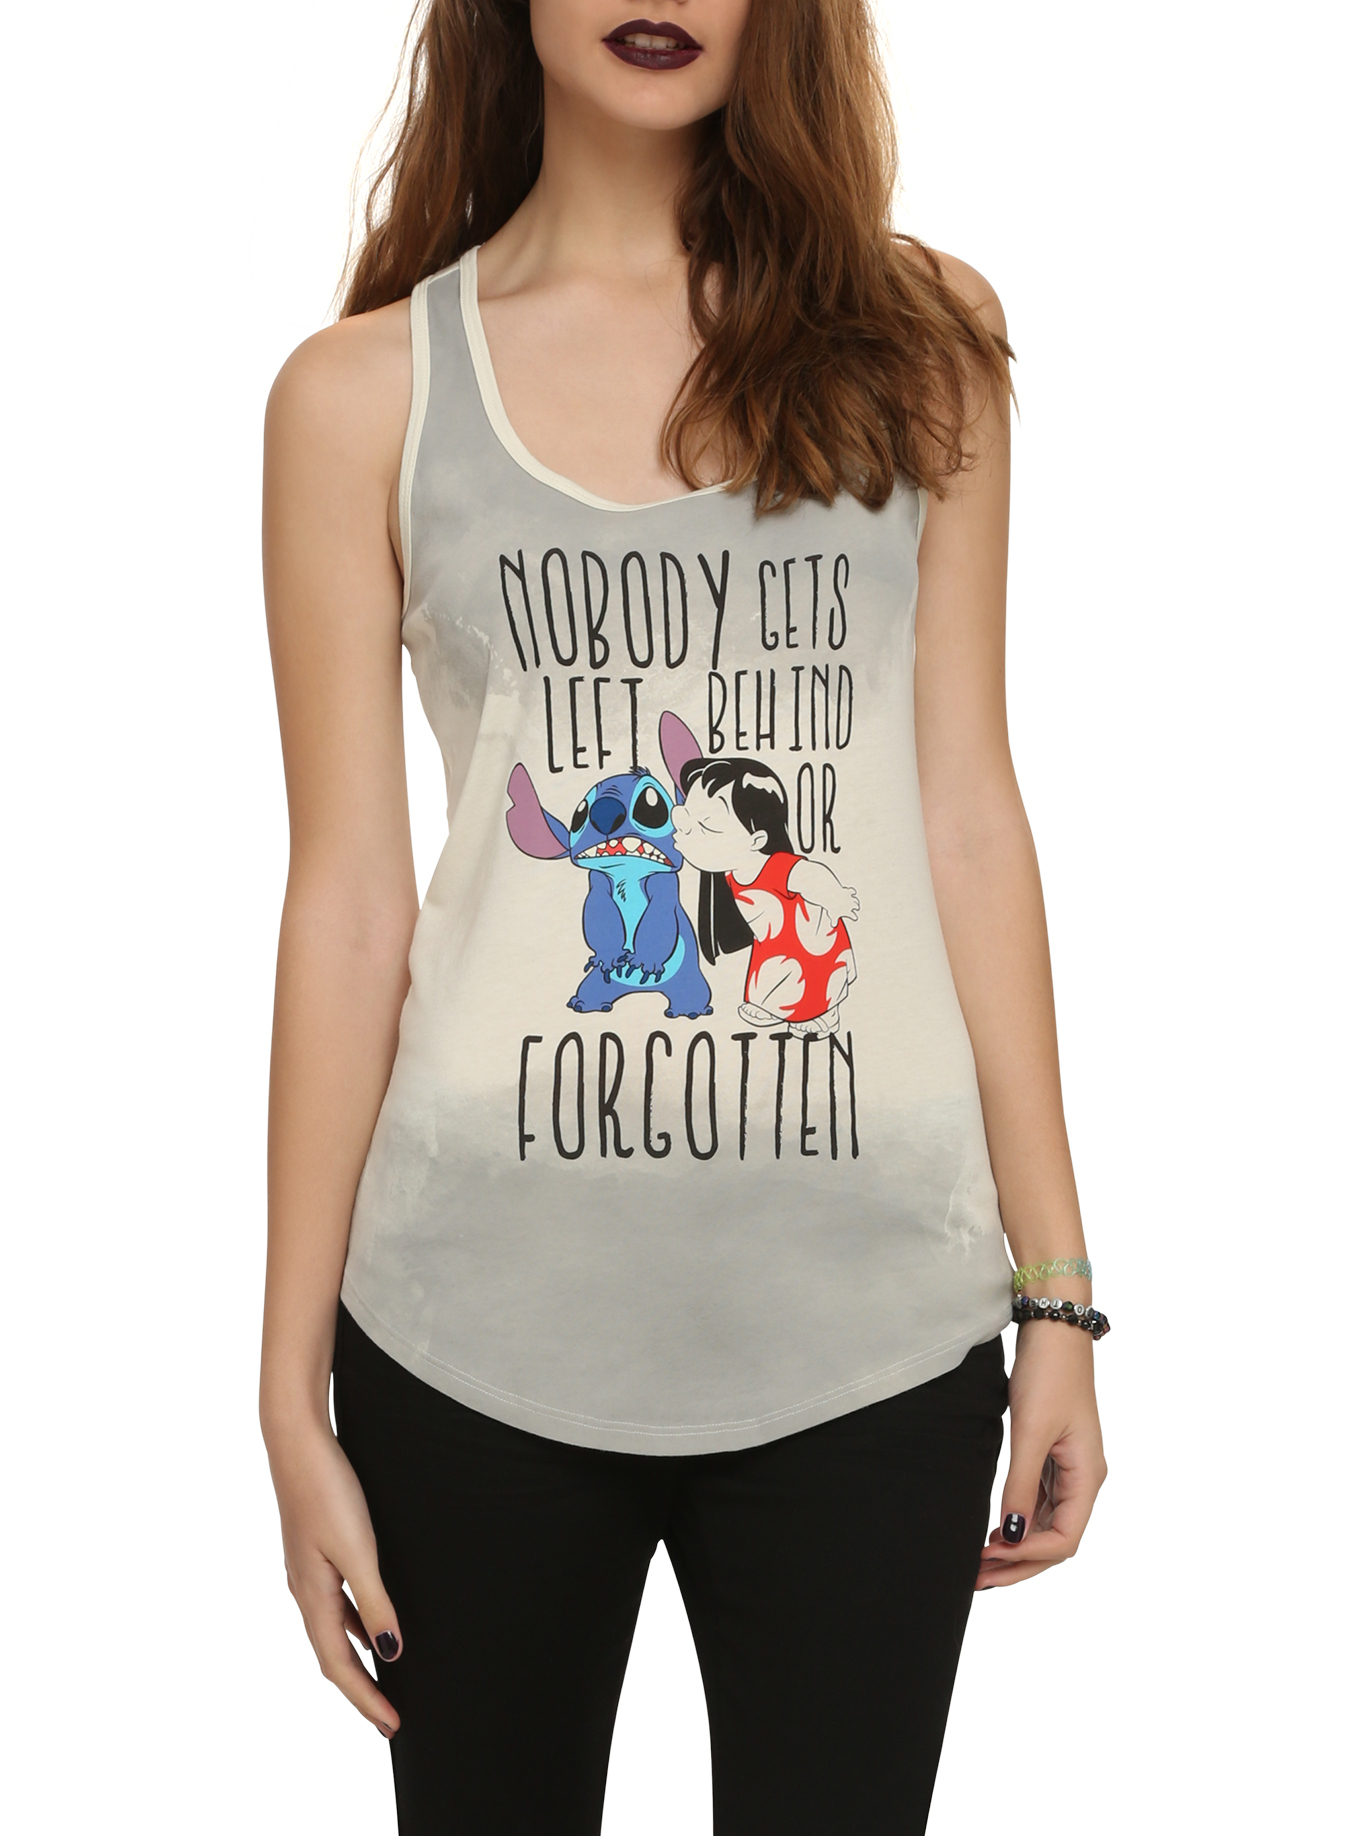 Stitch clothing for women from Hot Topic!